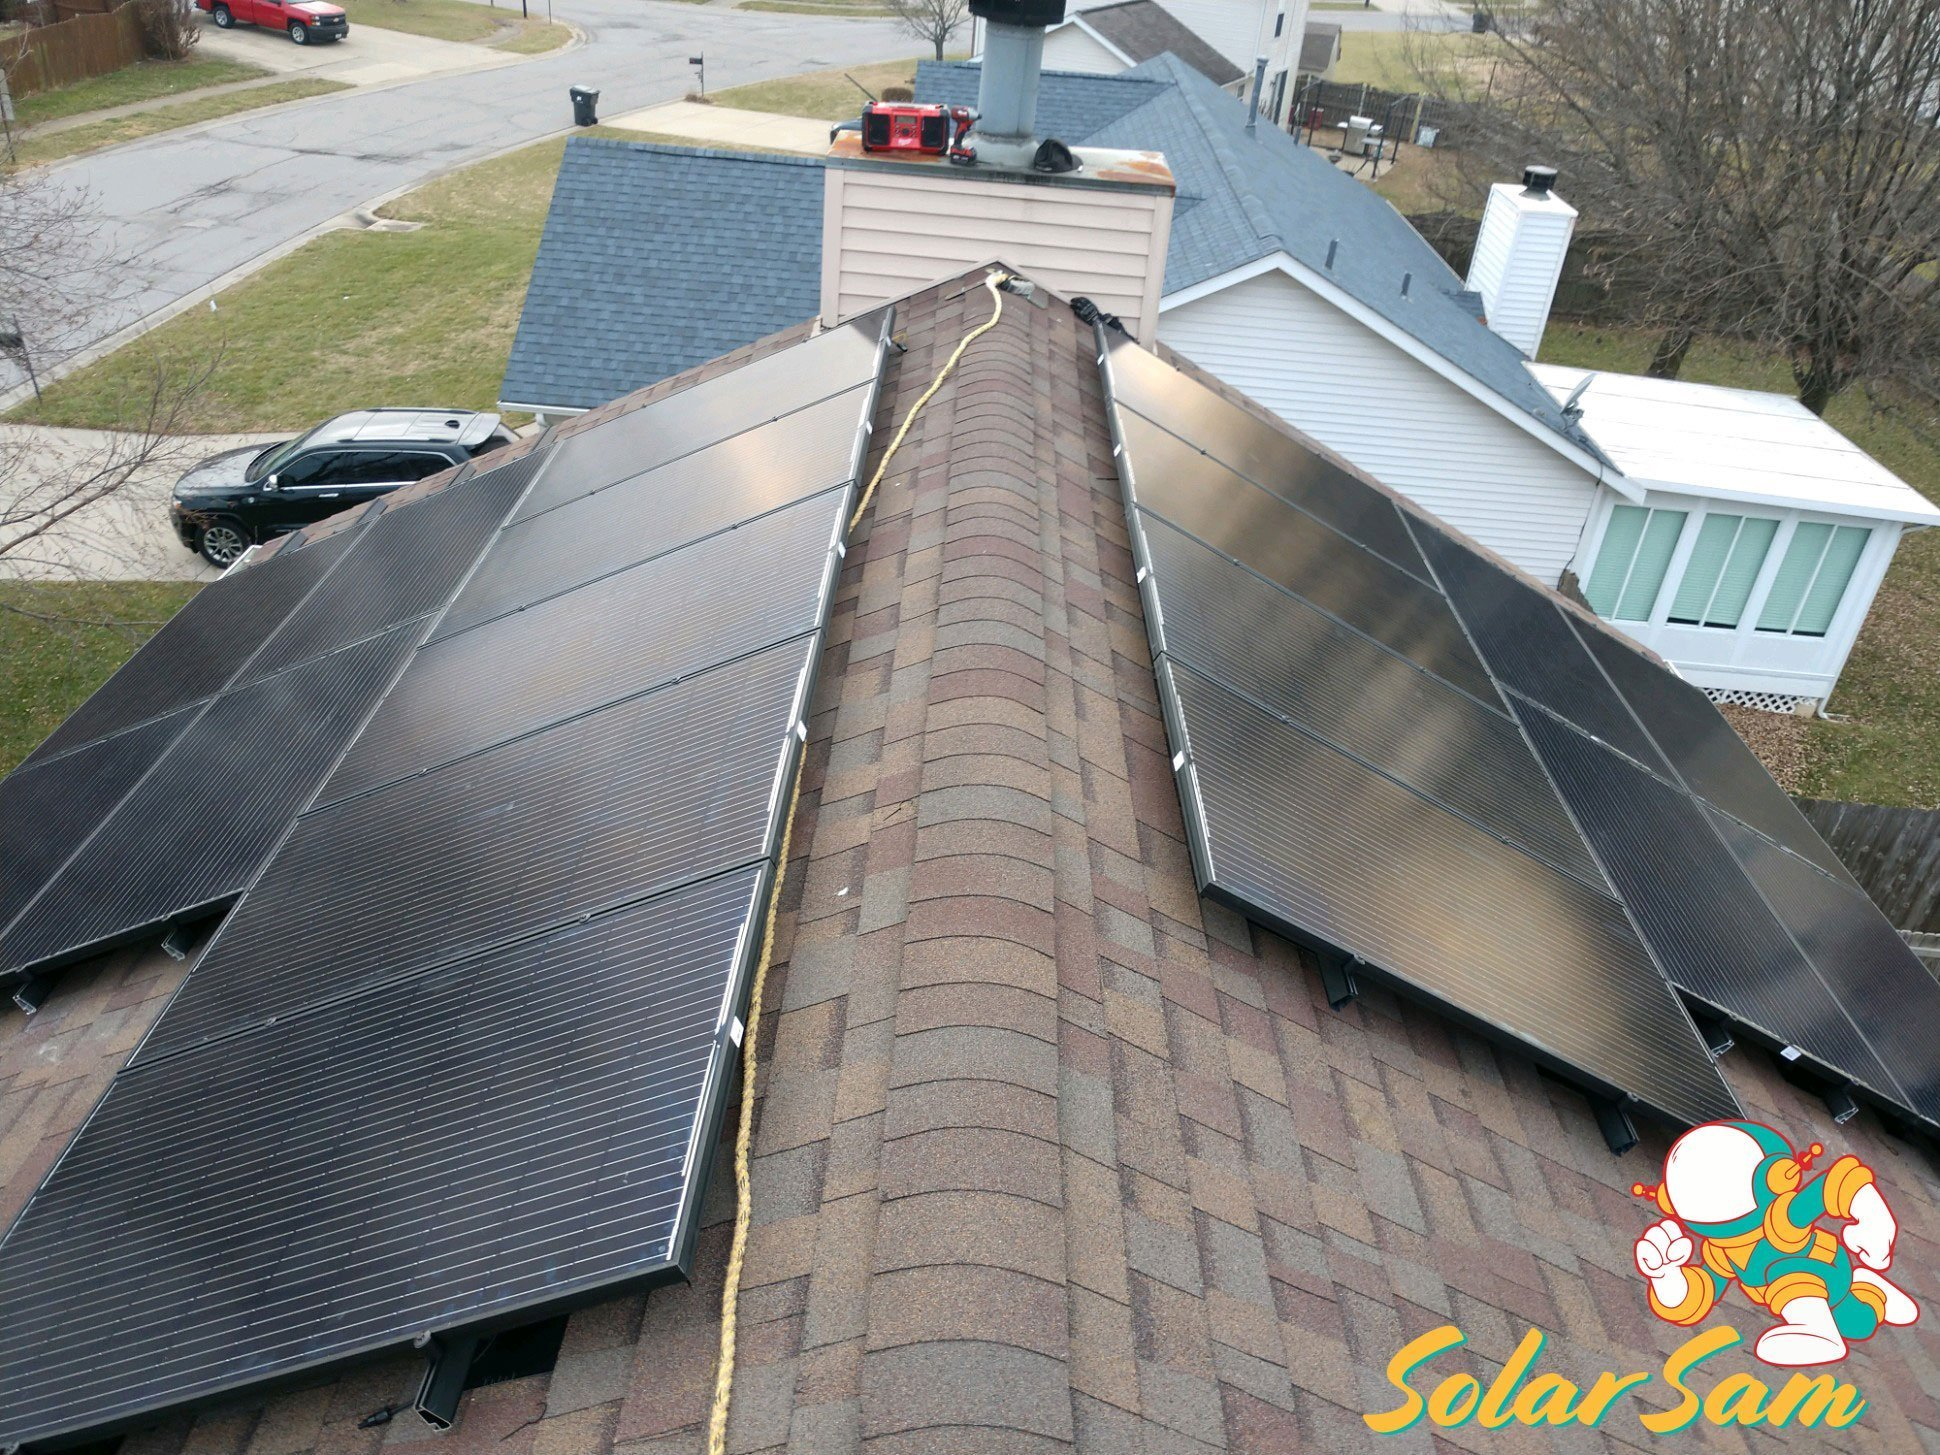 Rooftop Home Solar Panel Installation Belleville Illinois Roof Mounted Solar Sam Silfab Panels Solar Edge Inverter ATT Cellular Monitoring